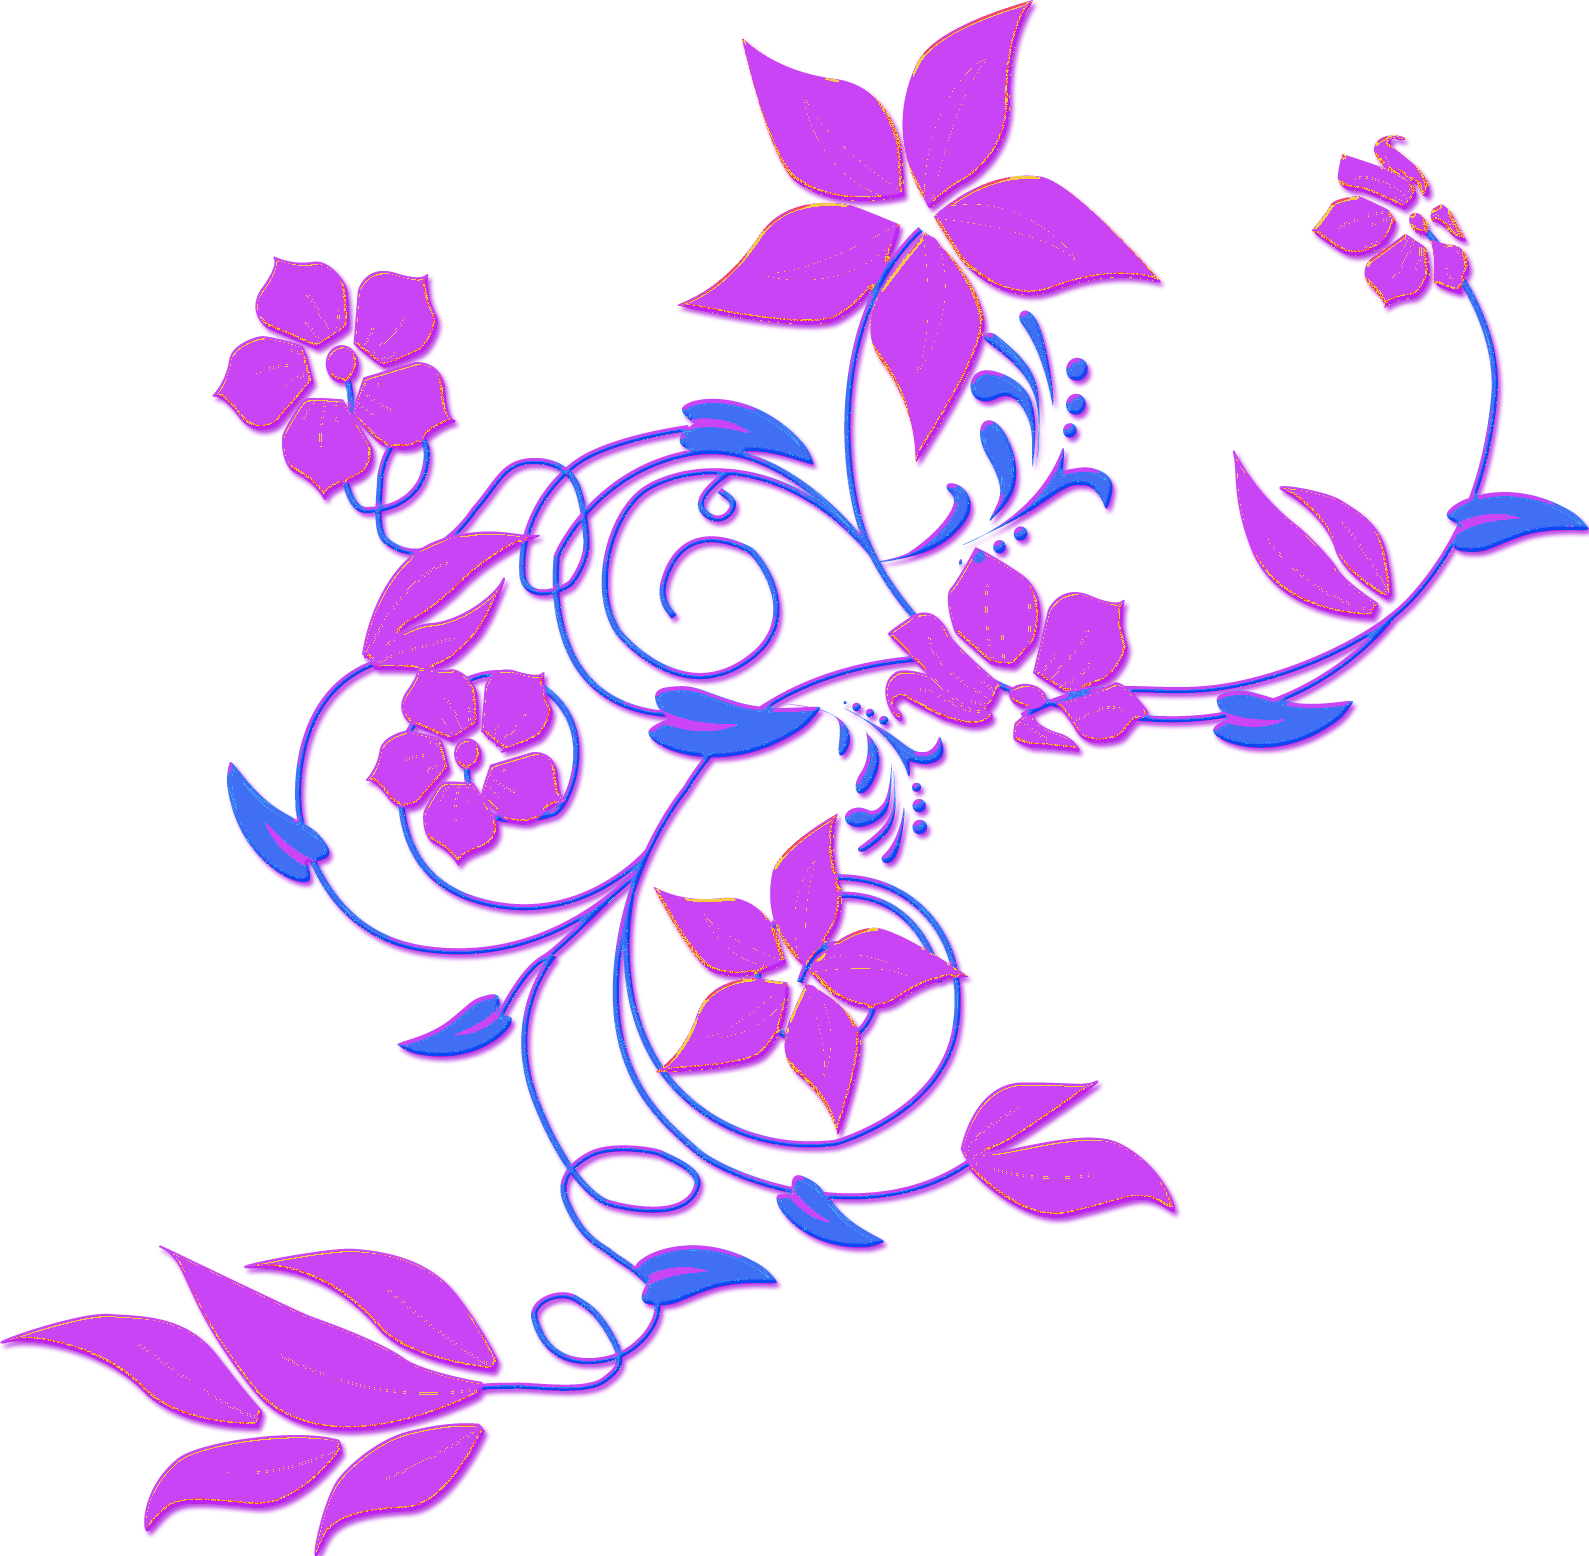 Bunga Flower Transparent Background image #47424